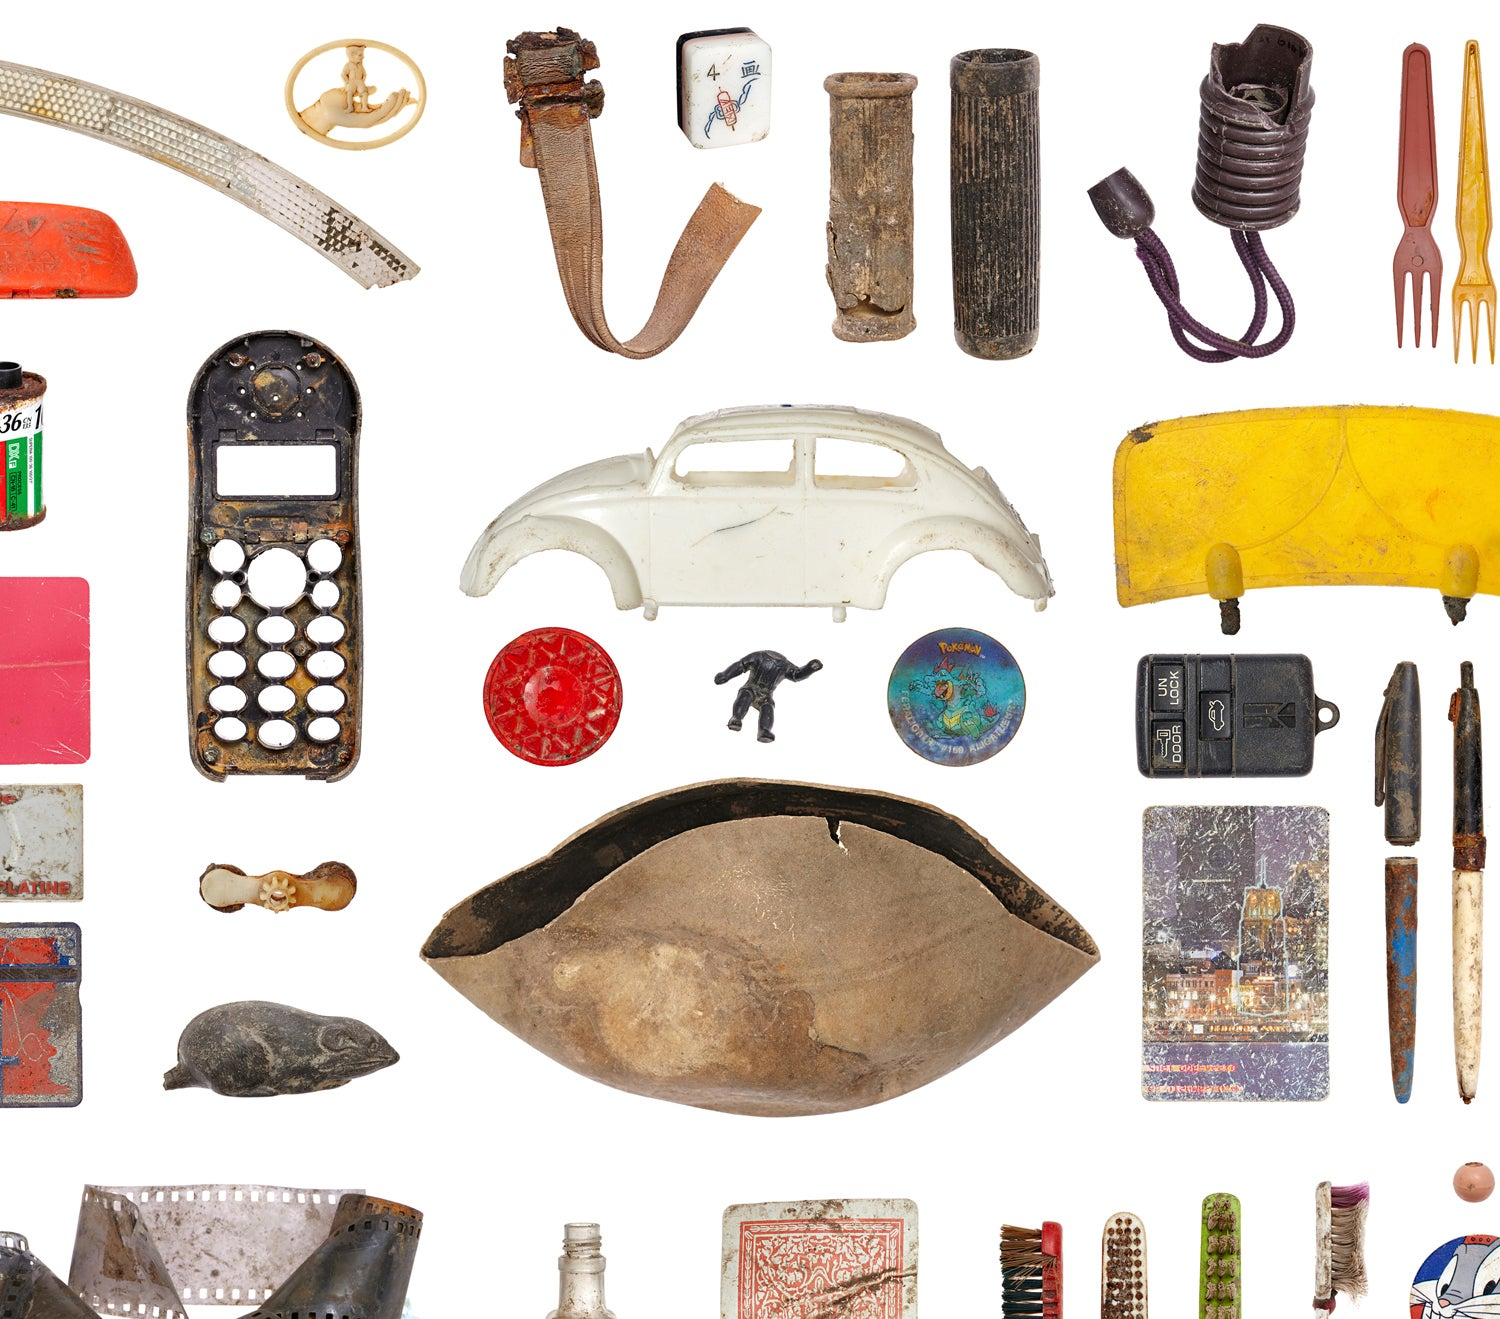 A selection of objects found during the dig.